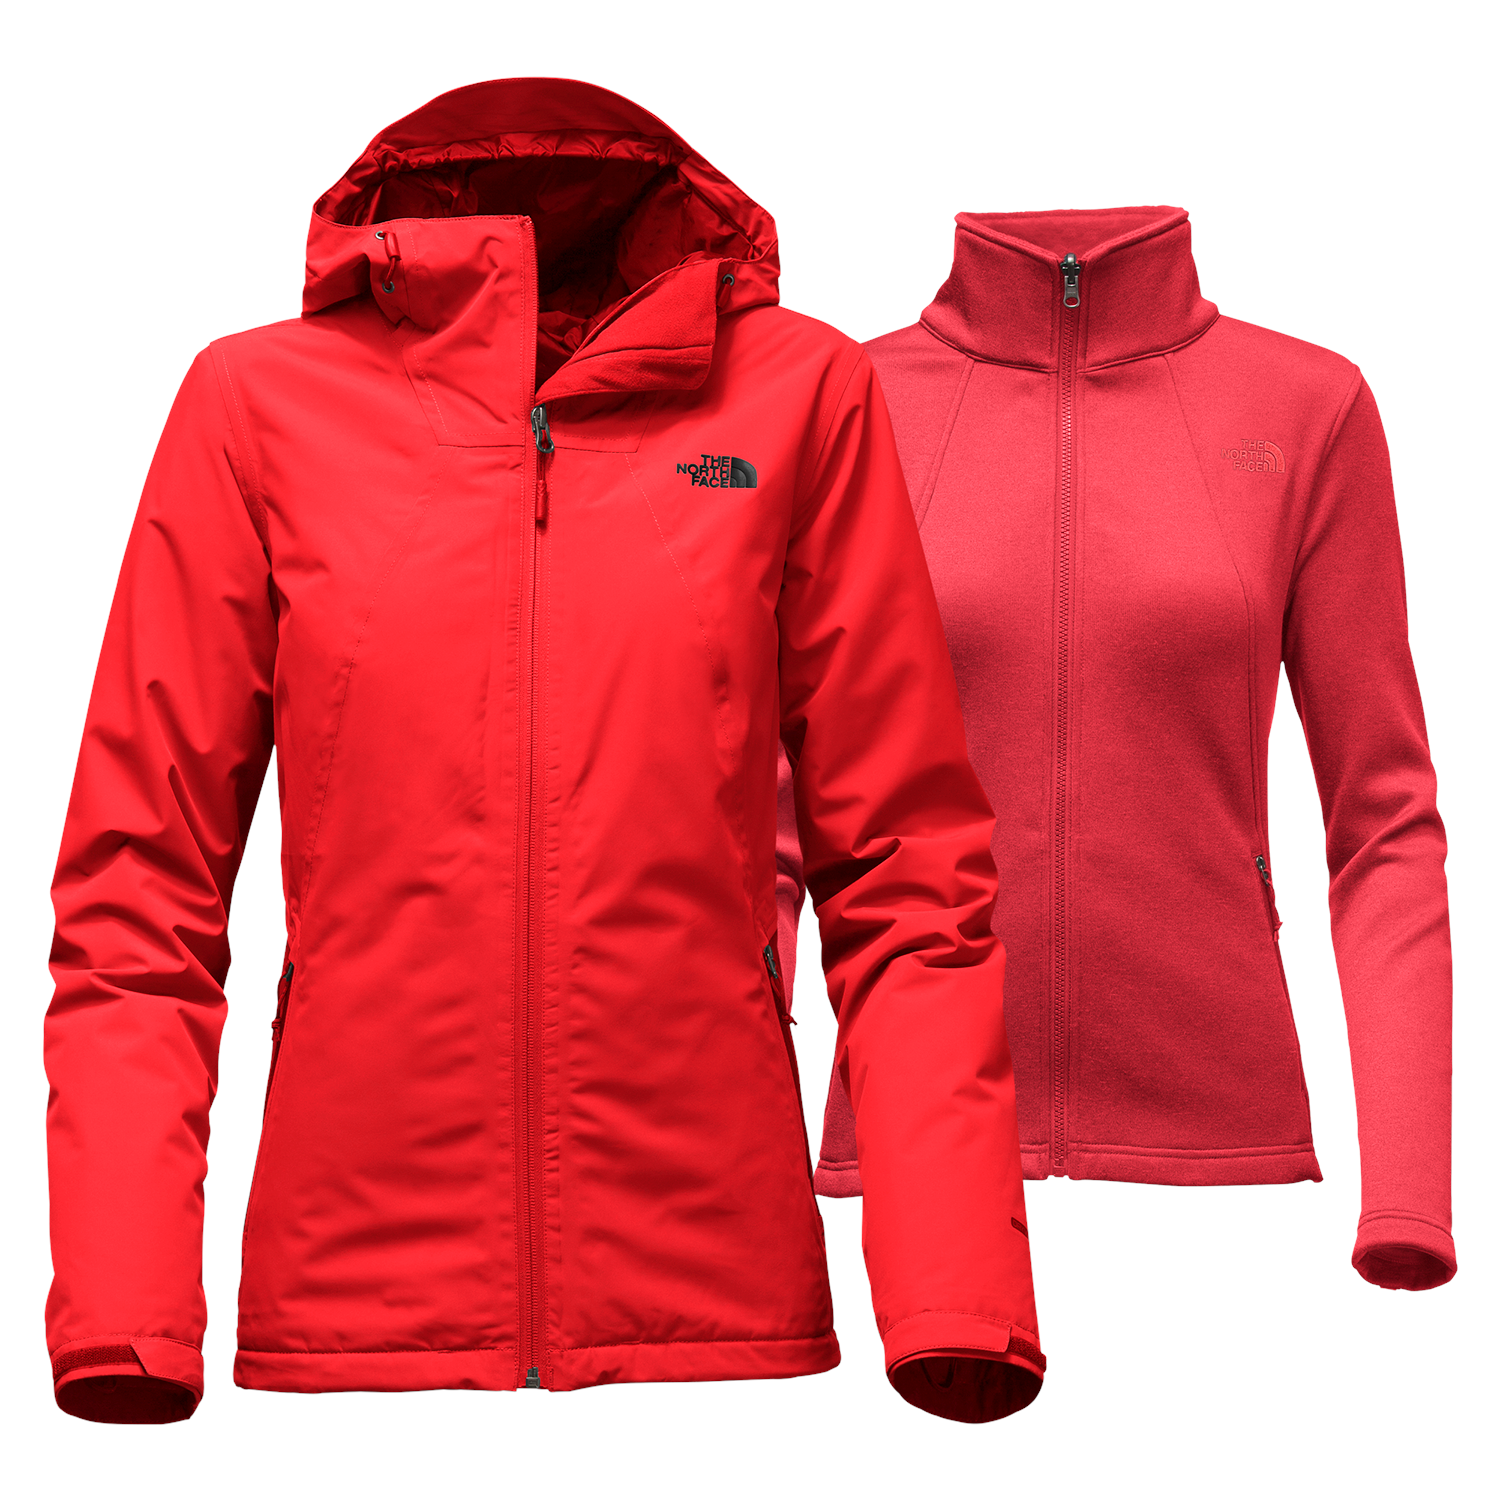 3ae6a8e3cc The North Face Highanddry Triclimate Jacket - Women s